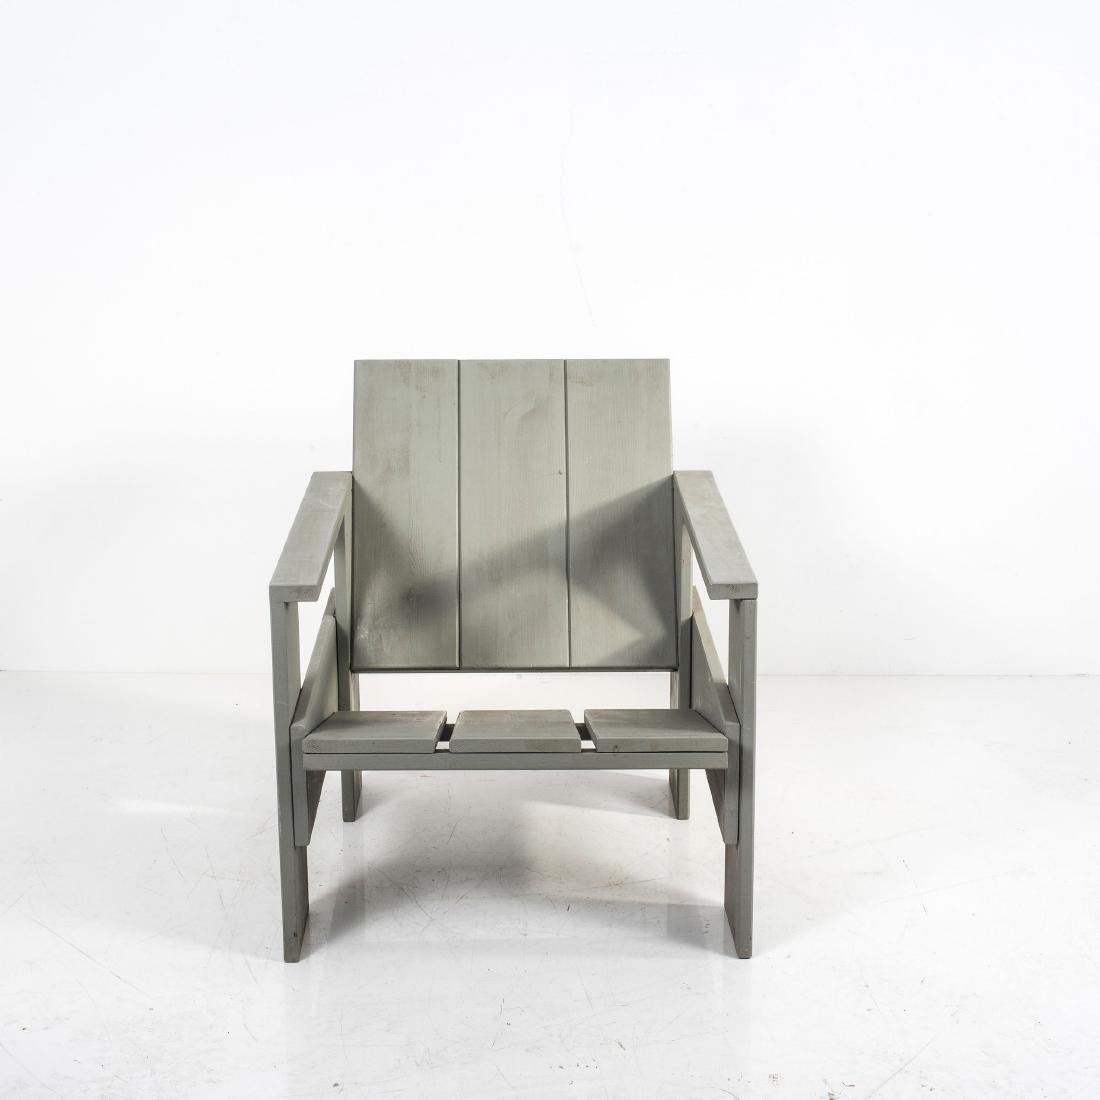 'Crate chair', 1934 - 3